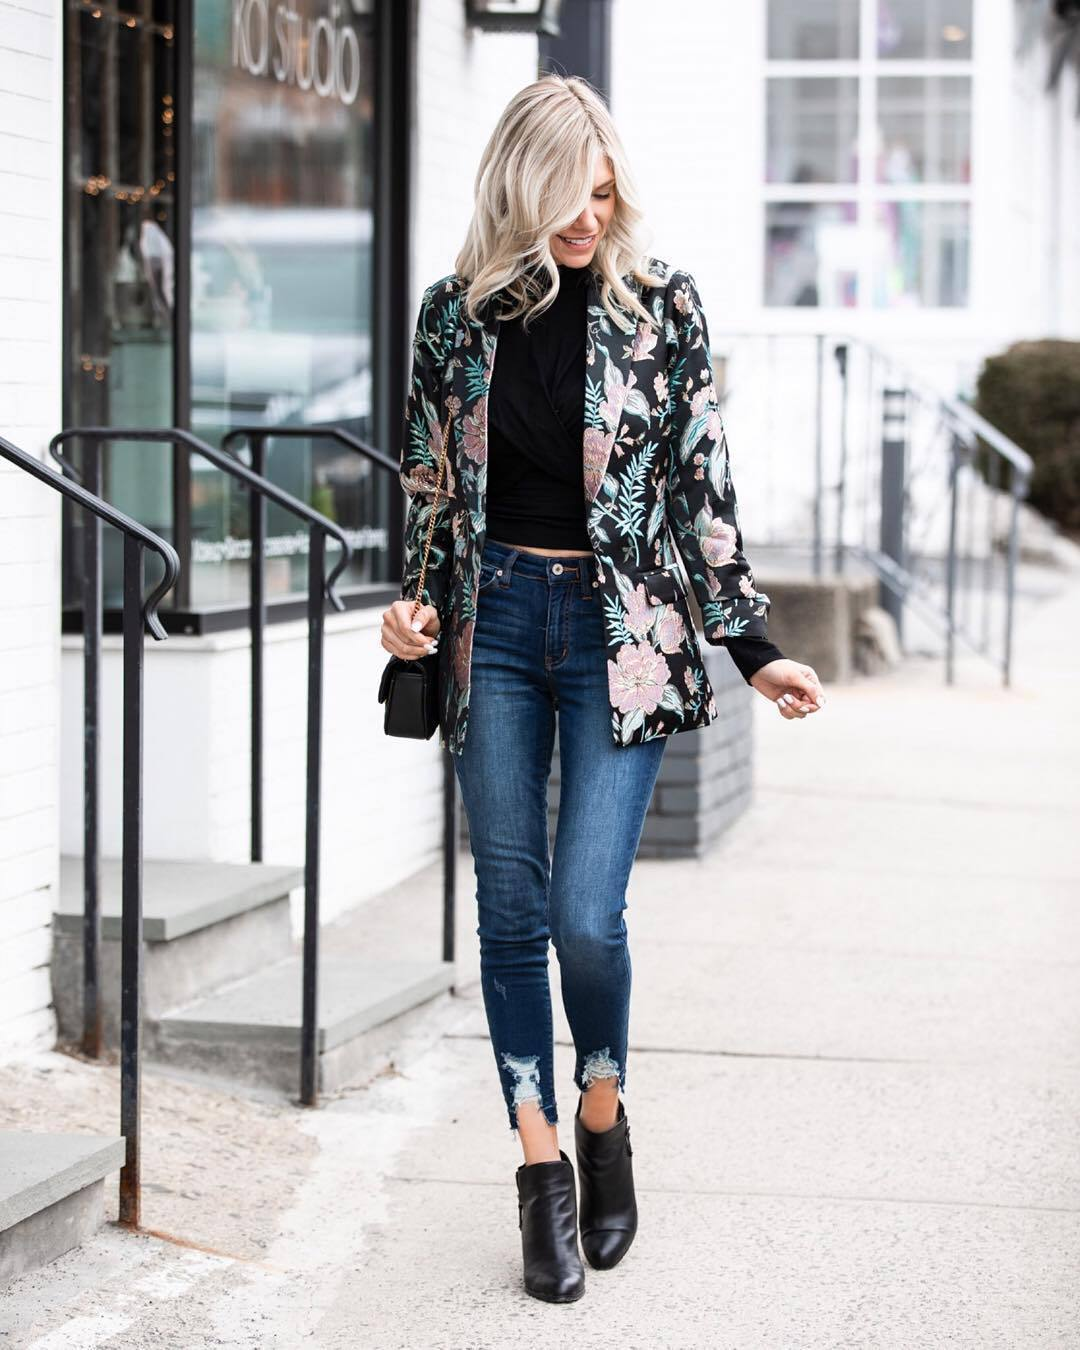 jeans, skinny jeans, cropped jeans, ankle boots, black boots